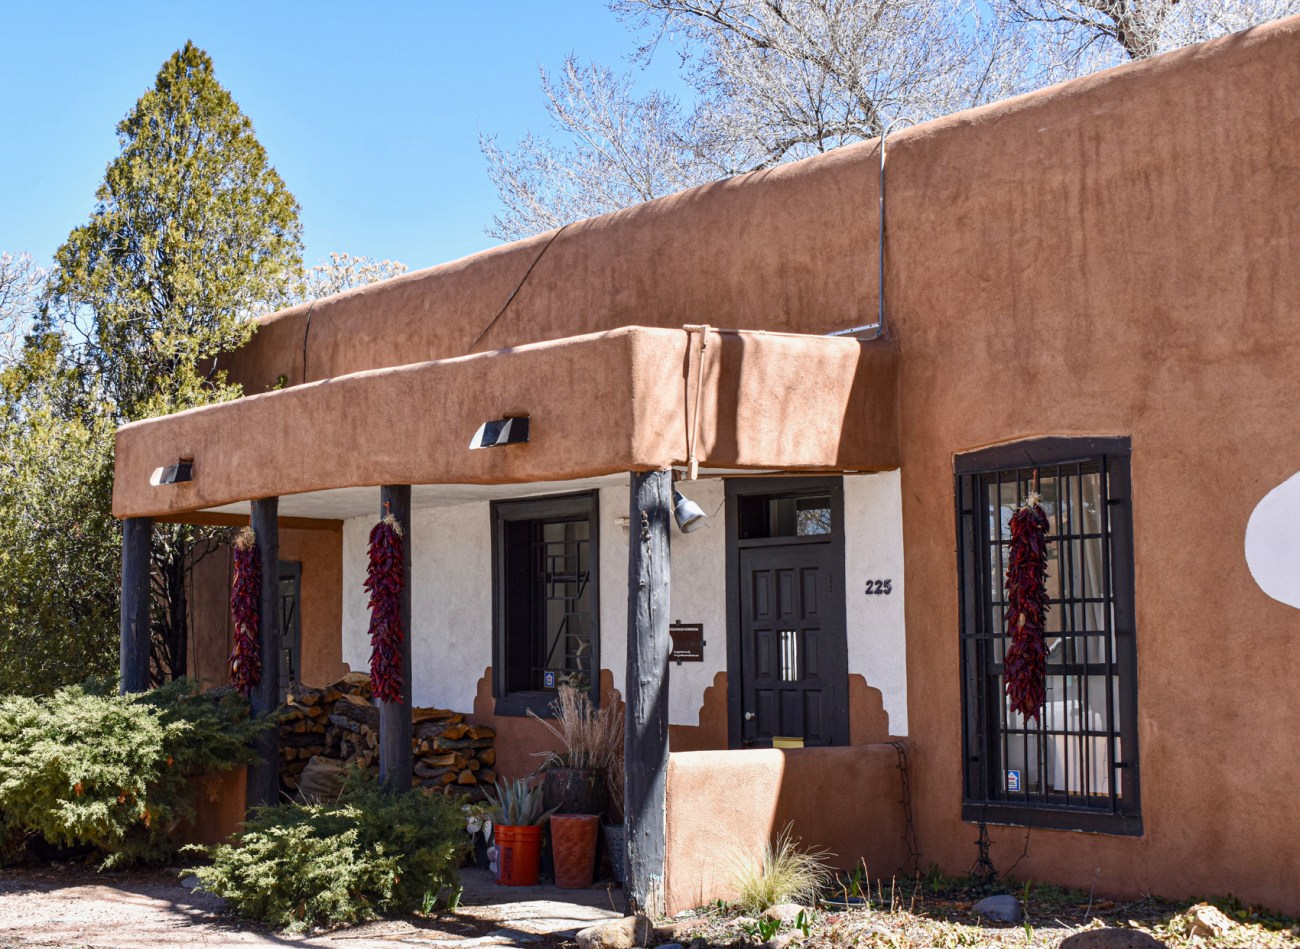 Santa Fe adobe house on New Mexico road trip.